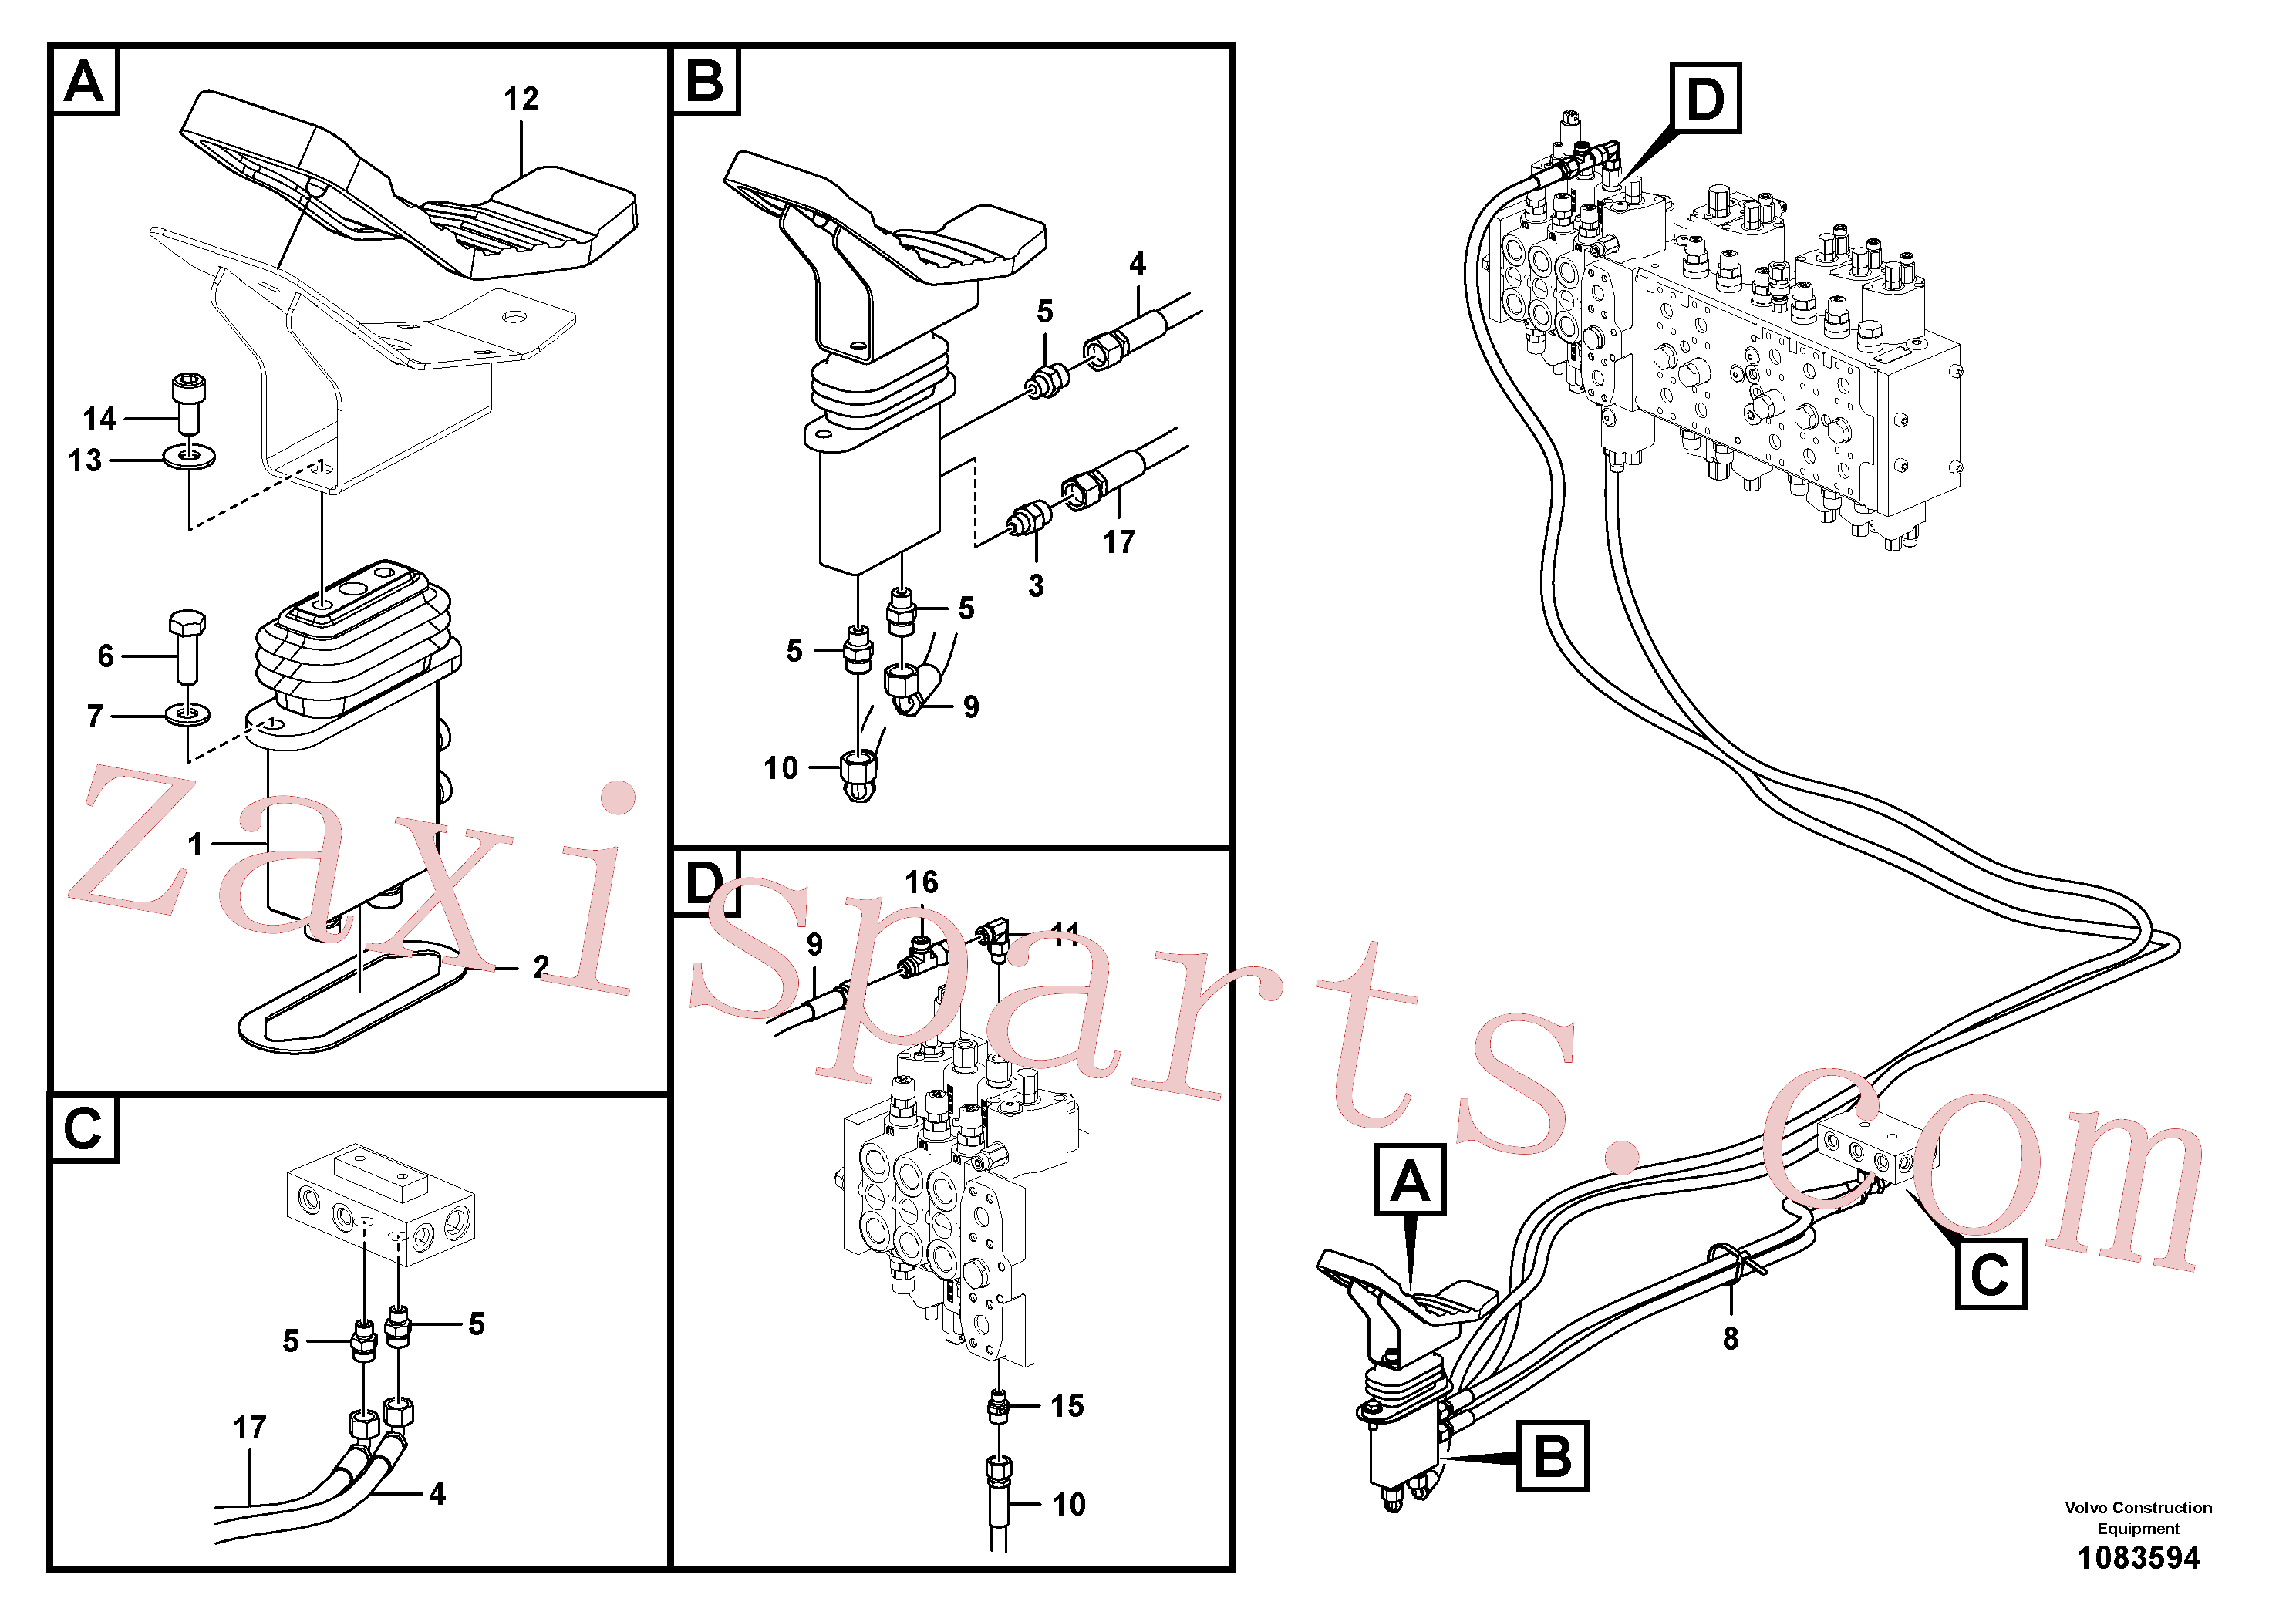 VOE14534435 for Volvo Servo system, control valve to remote control valve pedal(1083594 assembly)